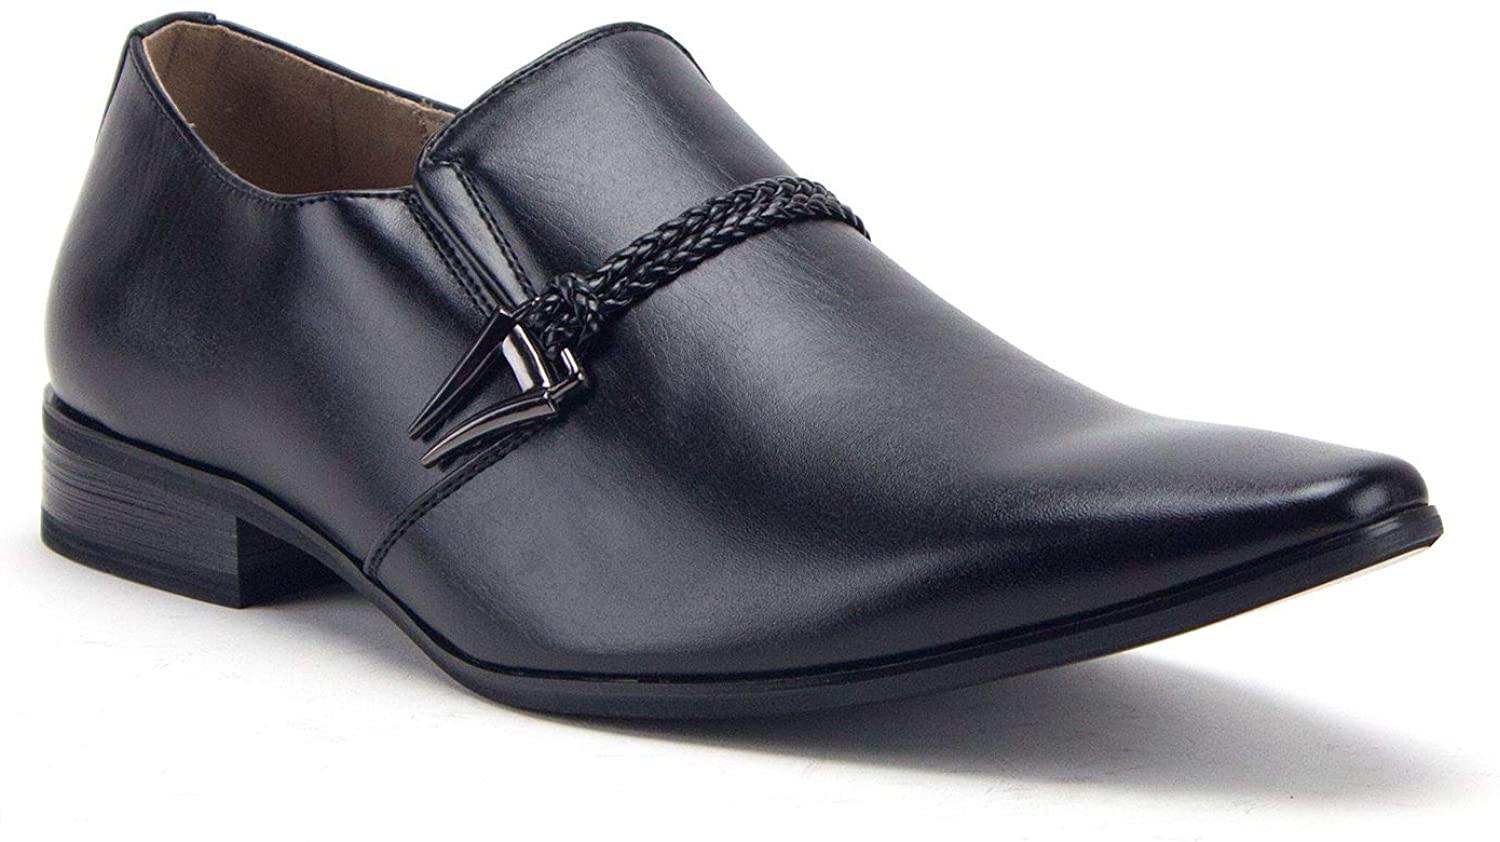 Jazame Men's 98105 Urban Pointed Toe Slip On Belted Loafers Dress Shoes